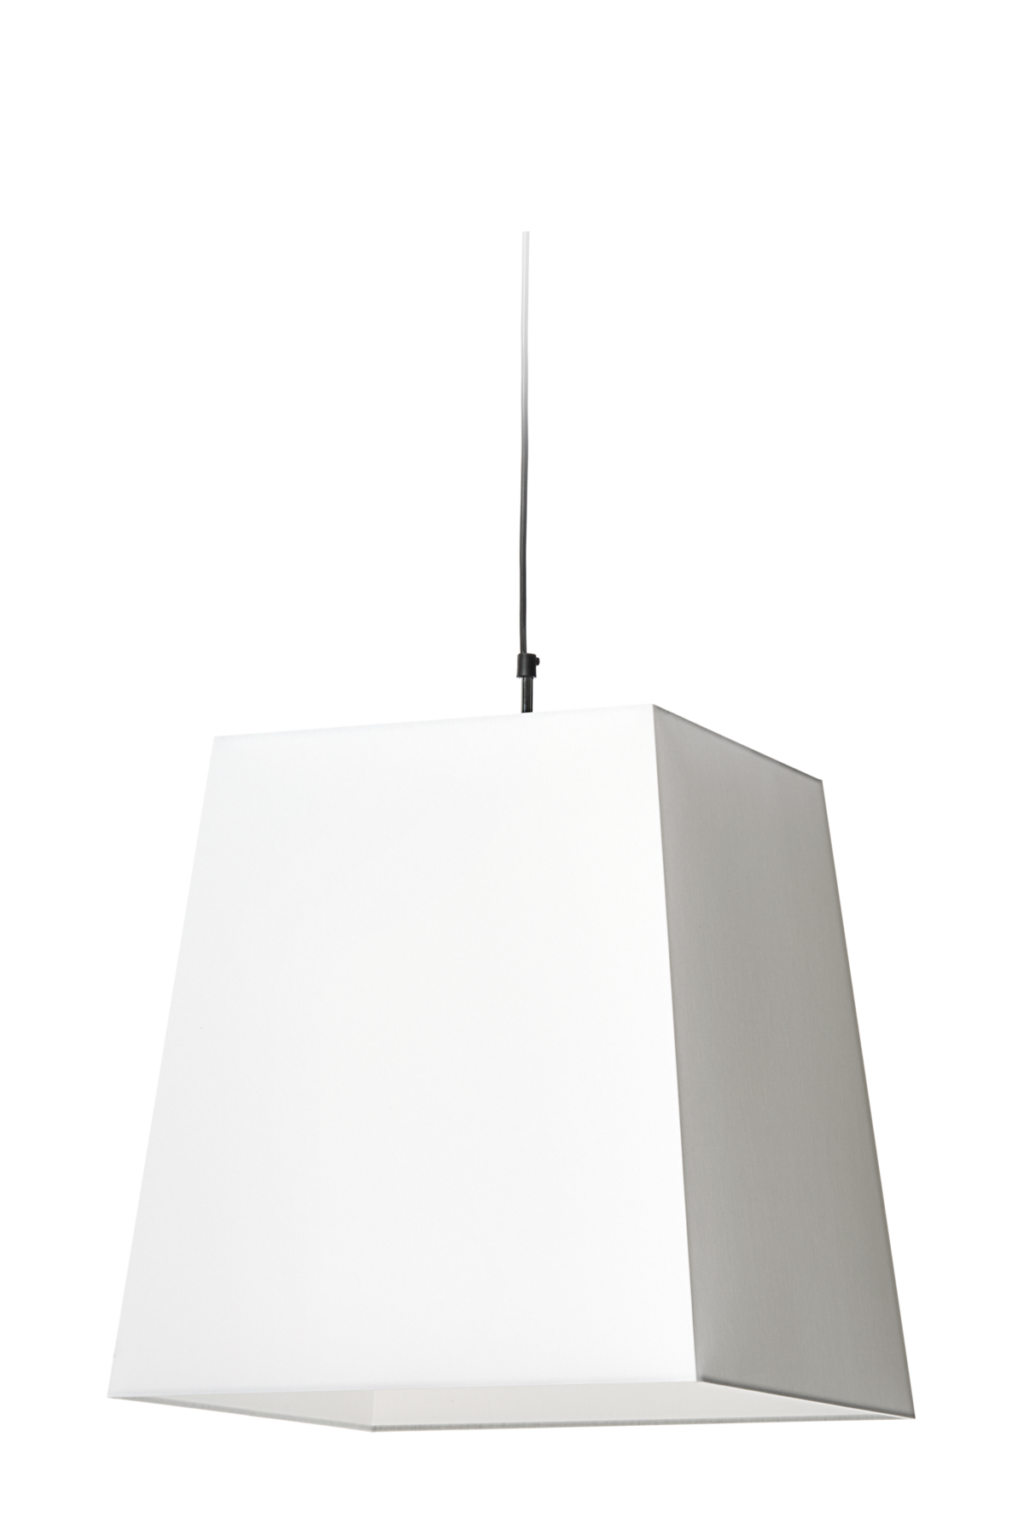 https://desidea.hu/wp-content/uploads/fly-images/160138/moooi-square-fuggesztett-lampa2-1024x0.png